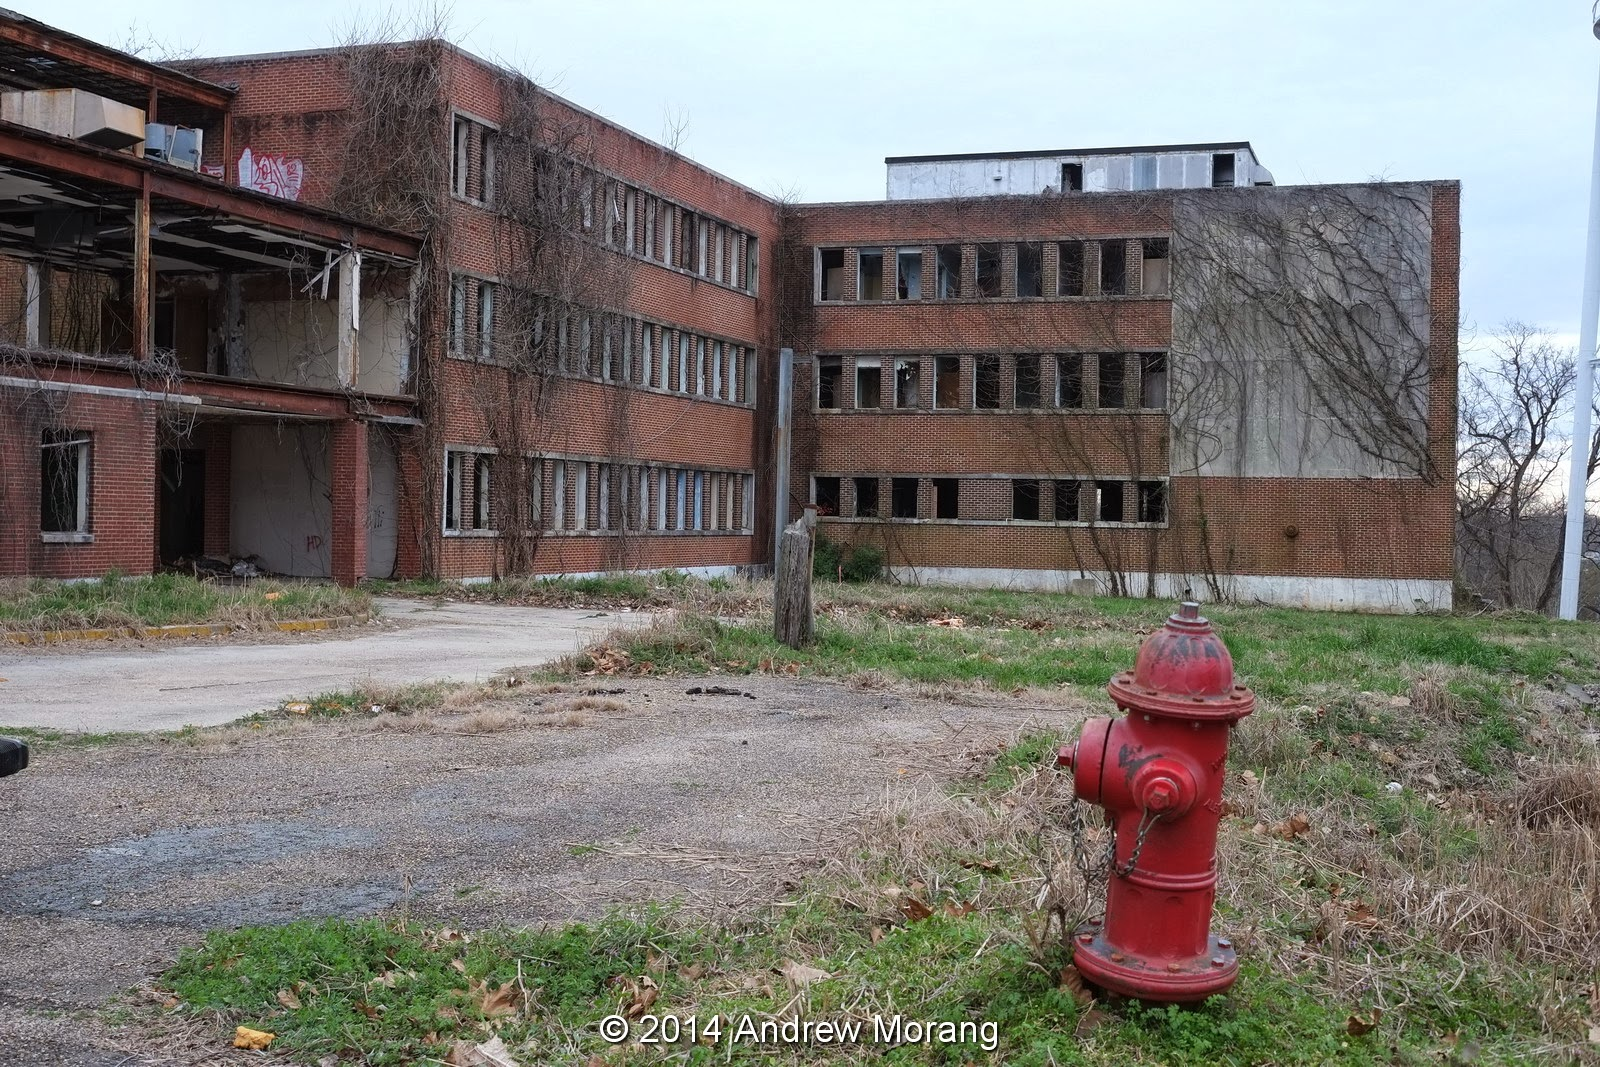 Urban Decay Much Worse Kuhn Memorial Charity Hospital